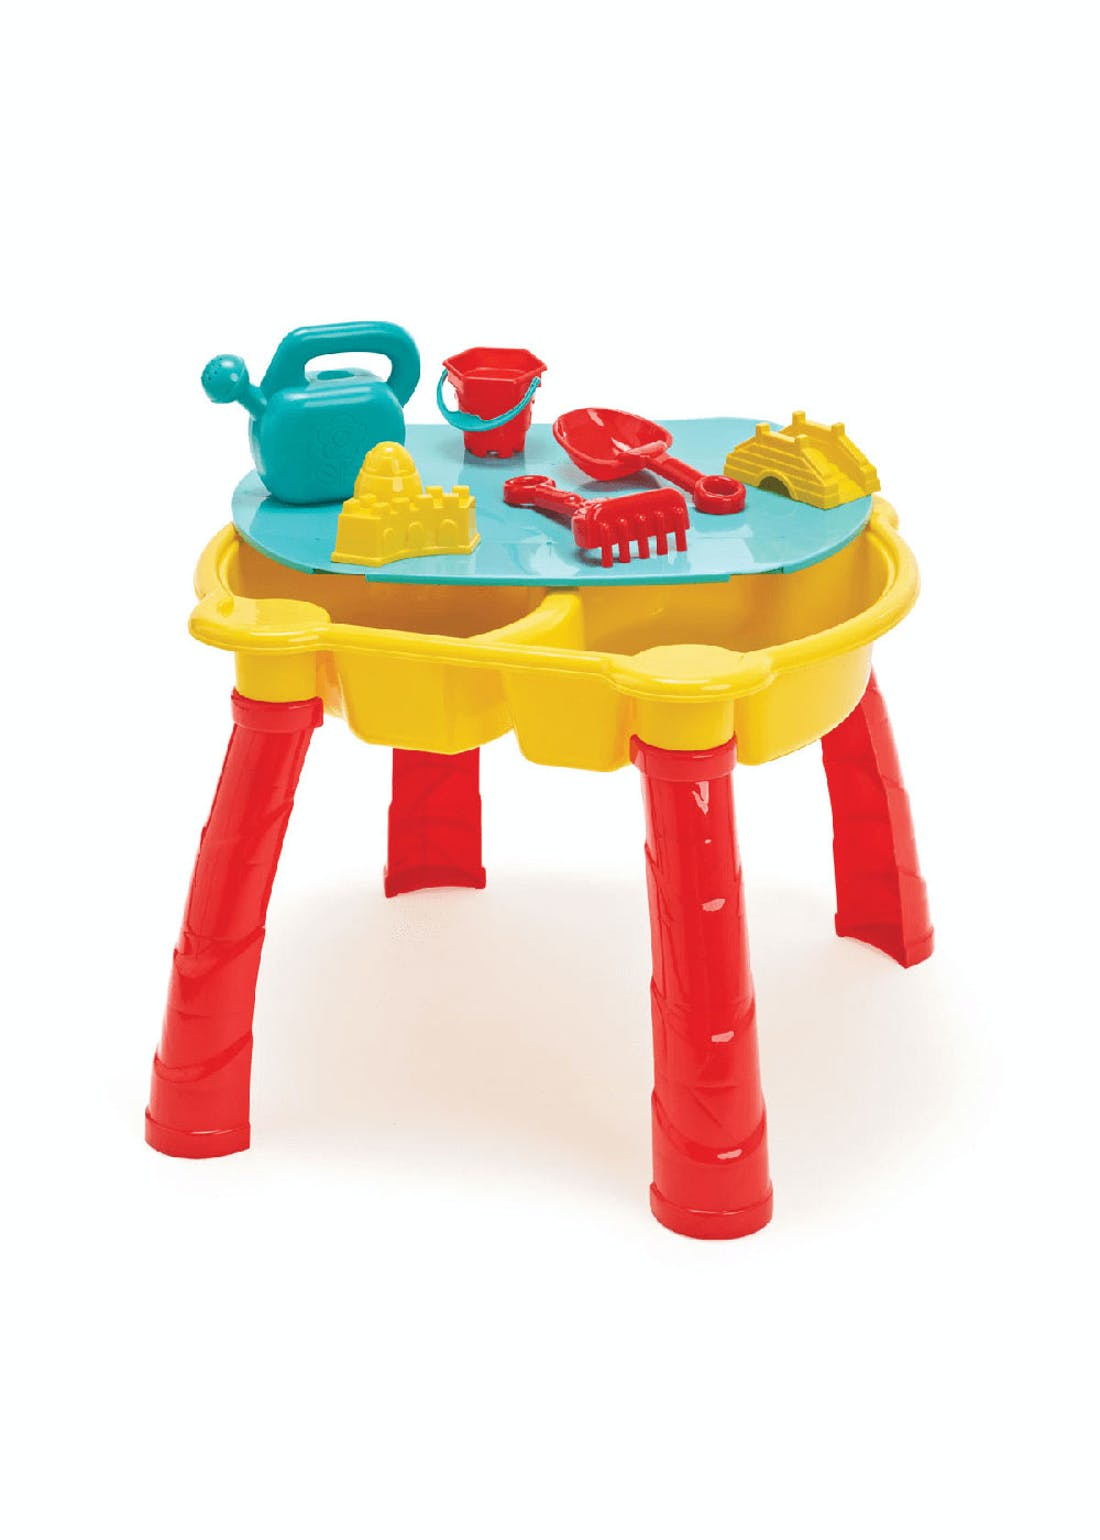 Out and About Sand and Water Play Table (52.5cm x 45cm x 10.5cm)